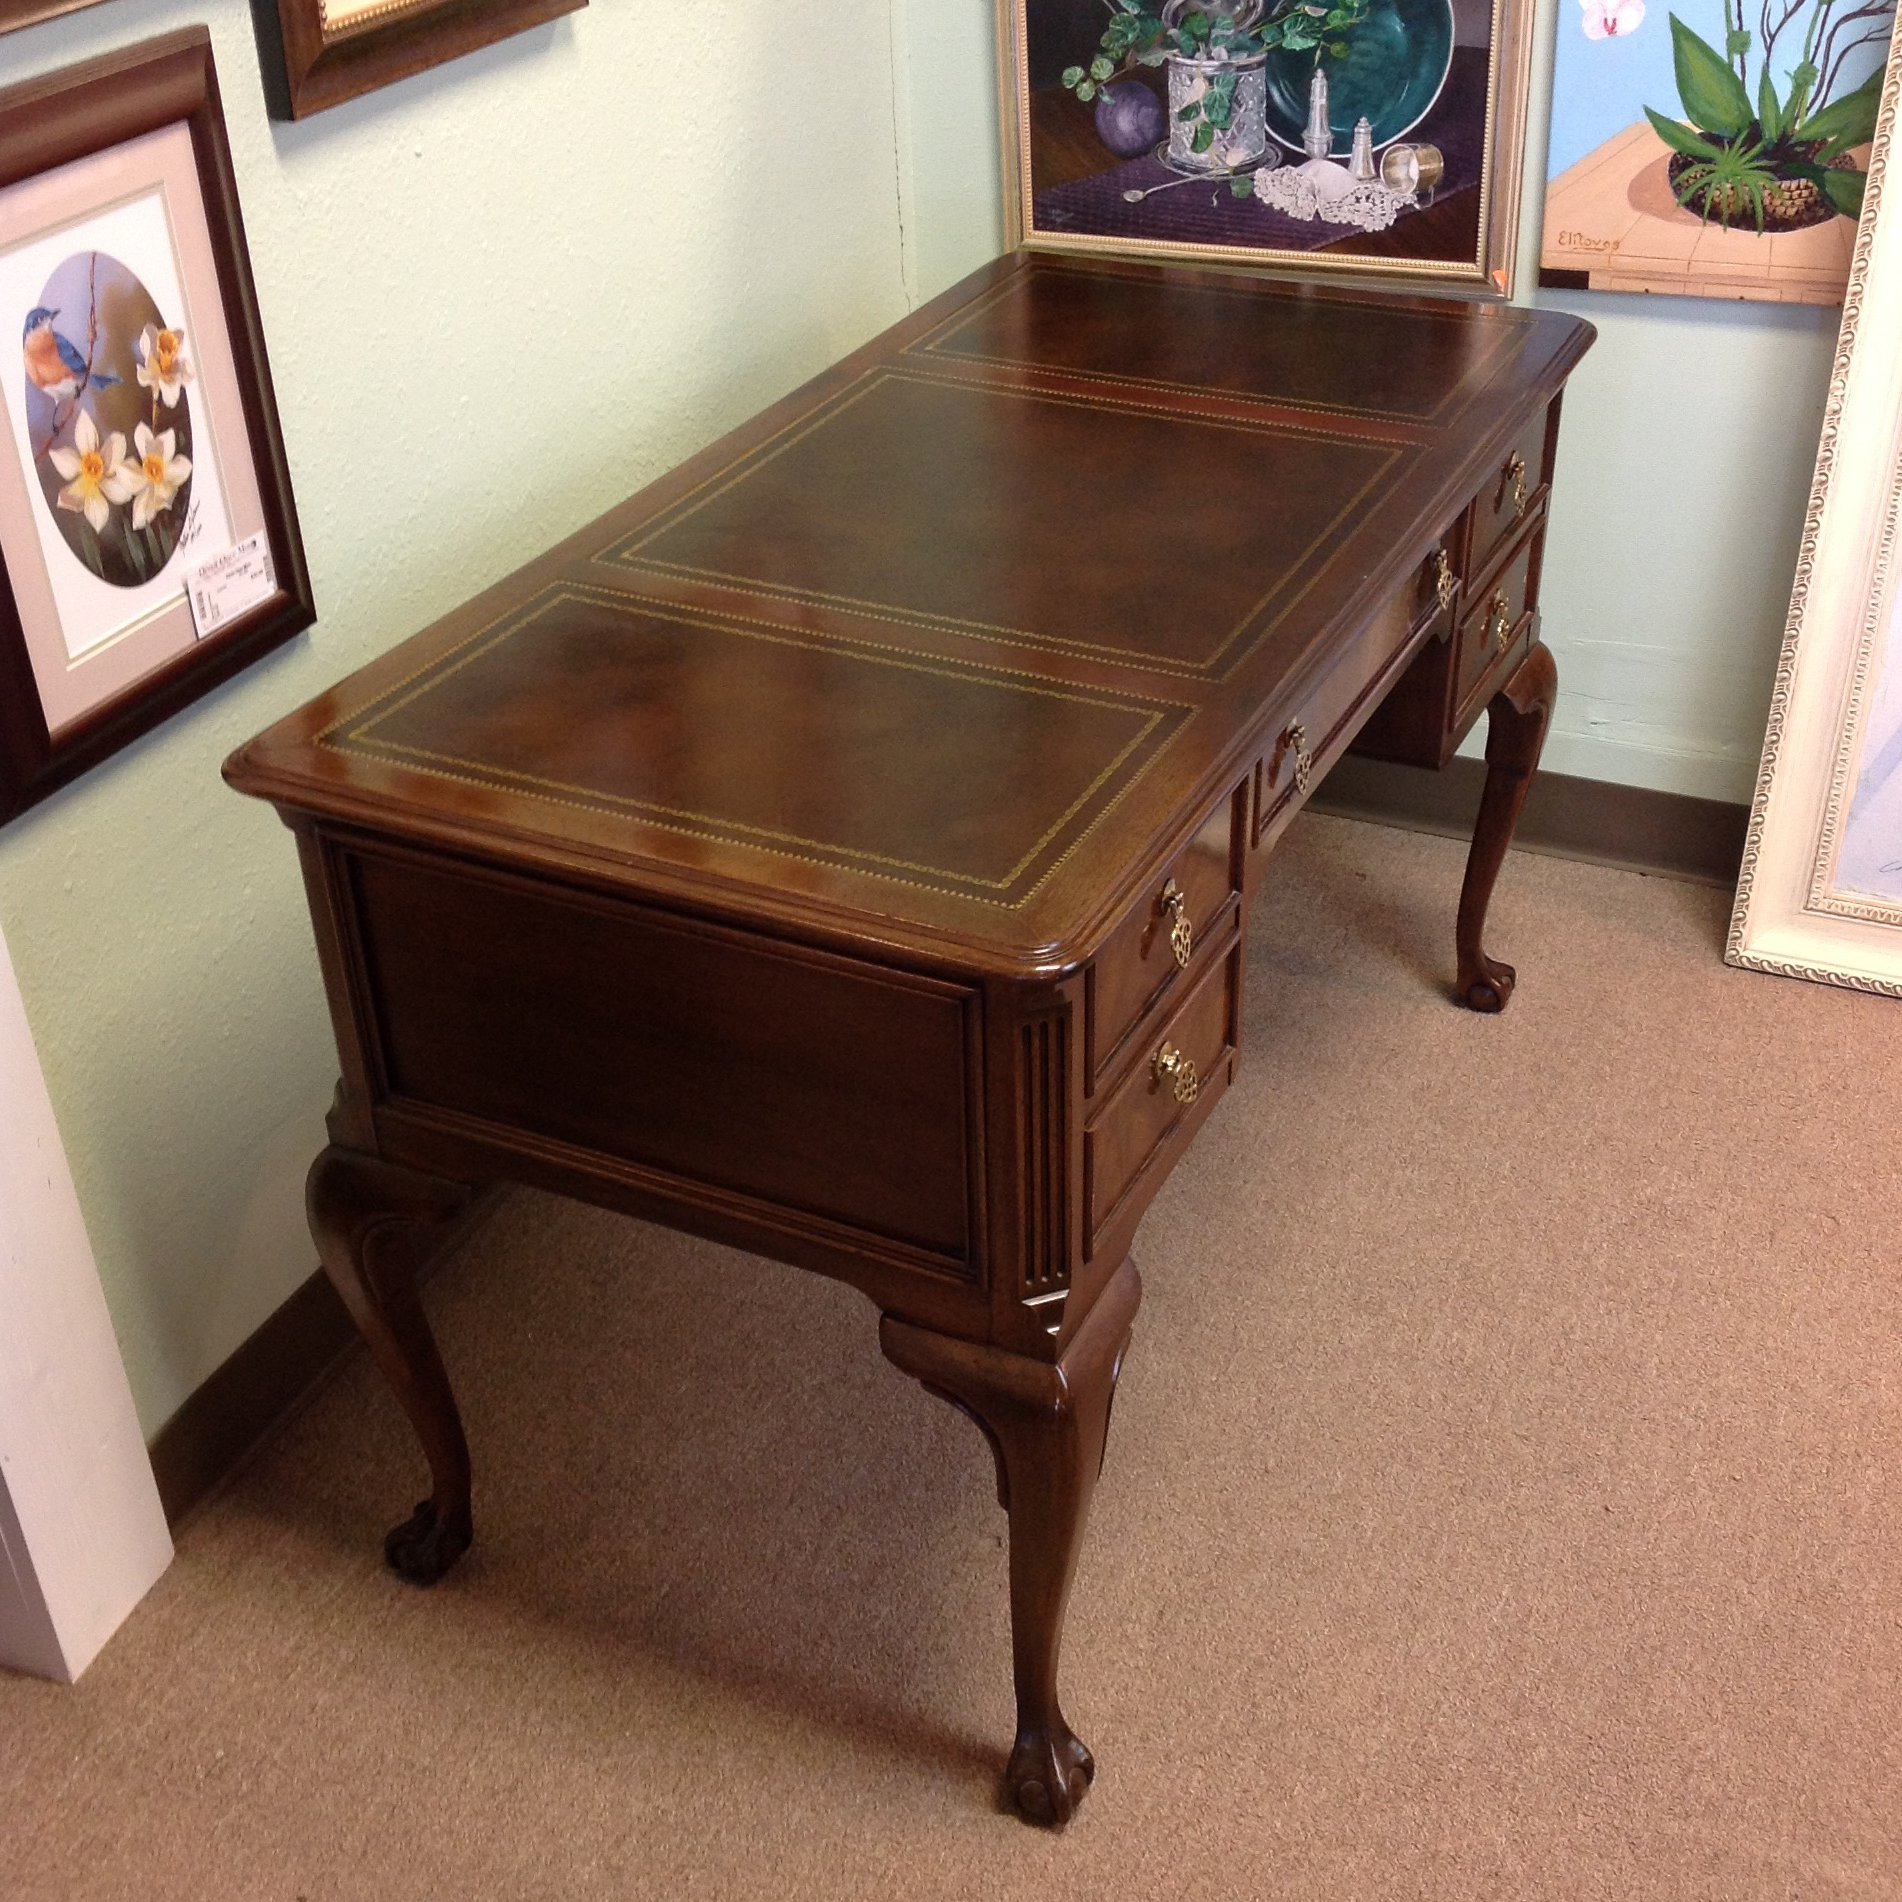 Sligh Furniture Leather Top Wooden Desk Chairish Rh Com Antique Vintage From The 1920